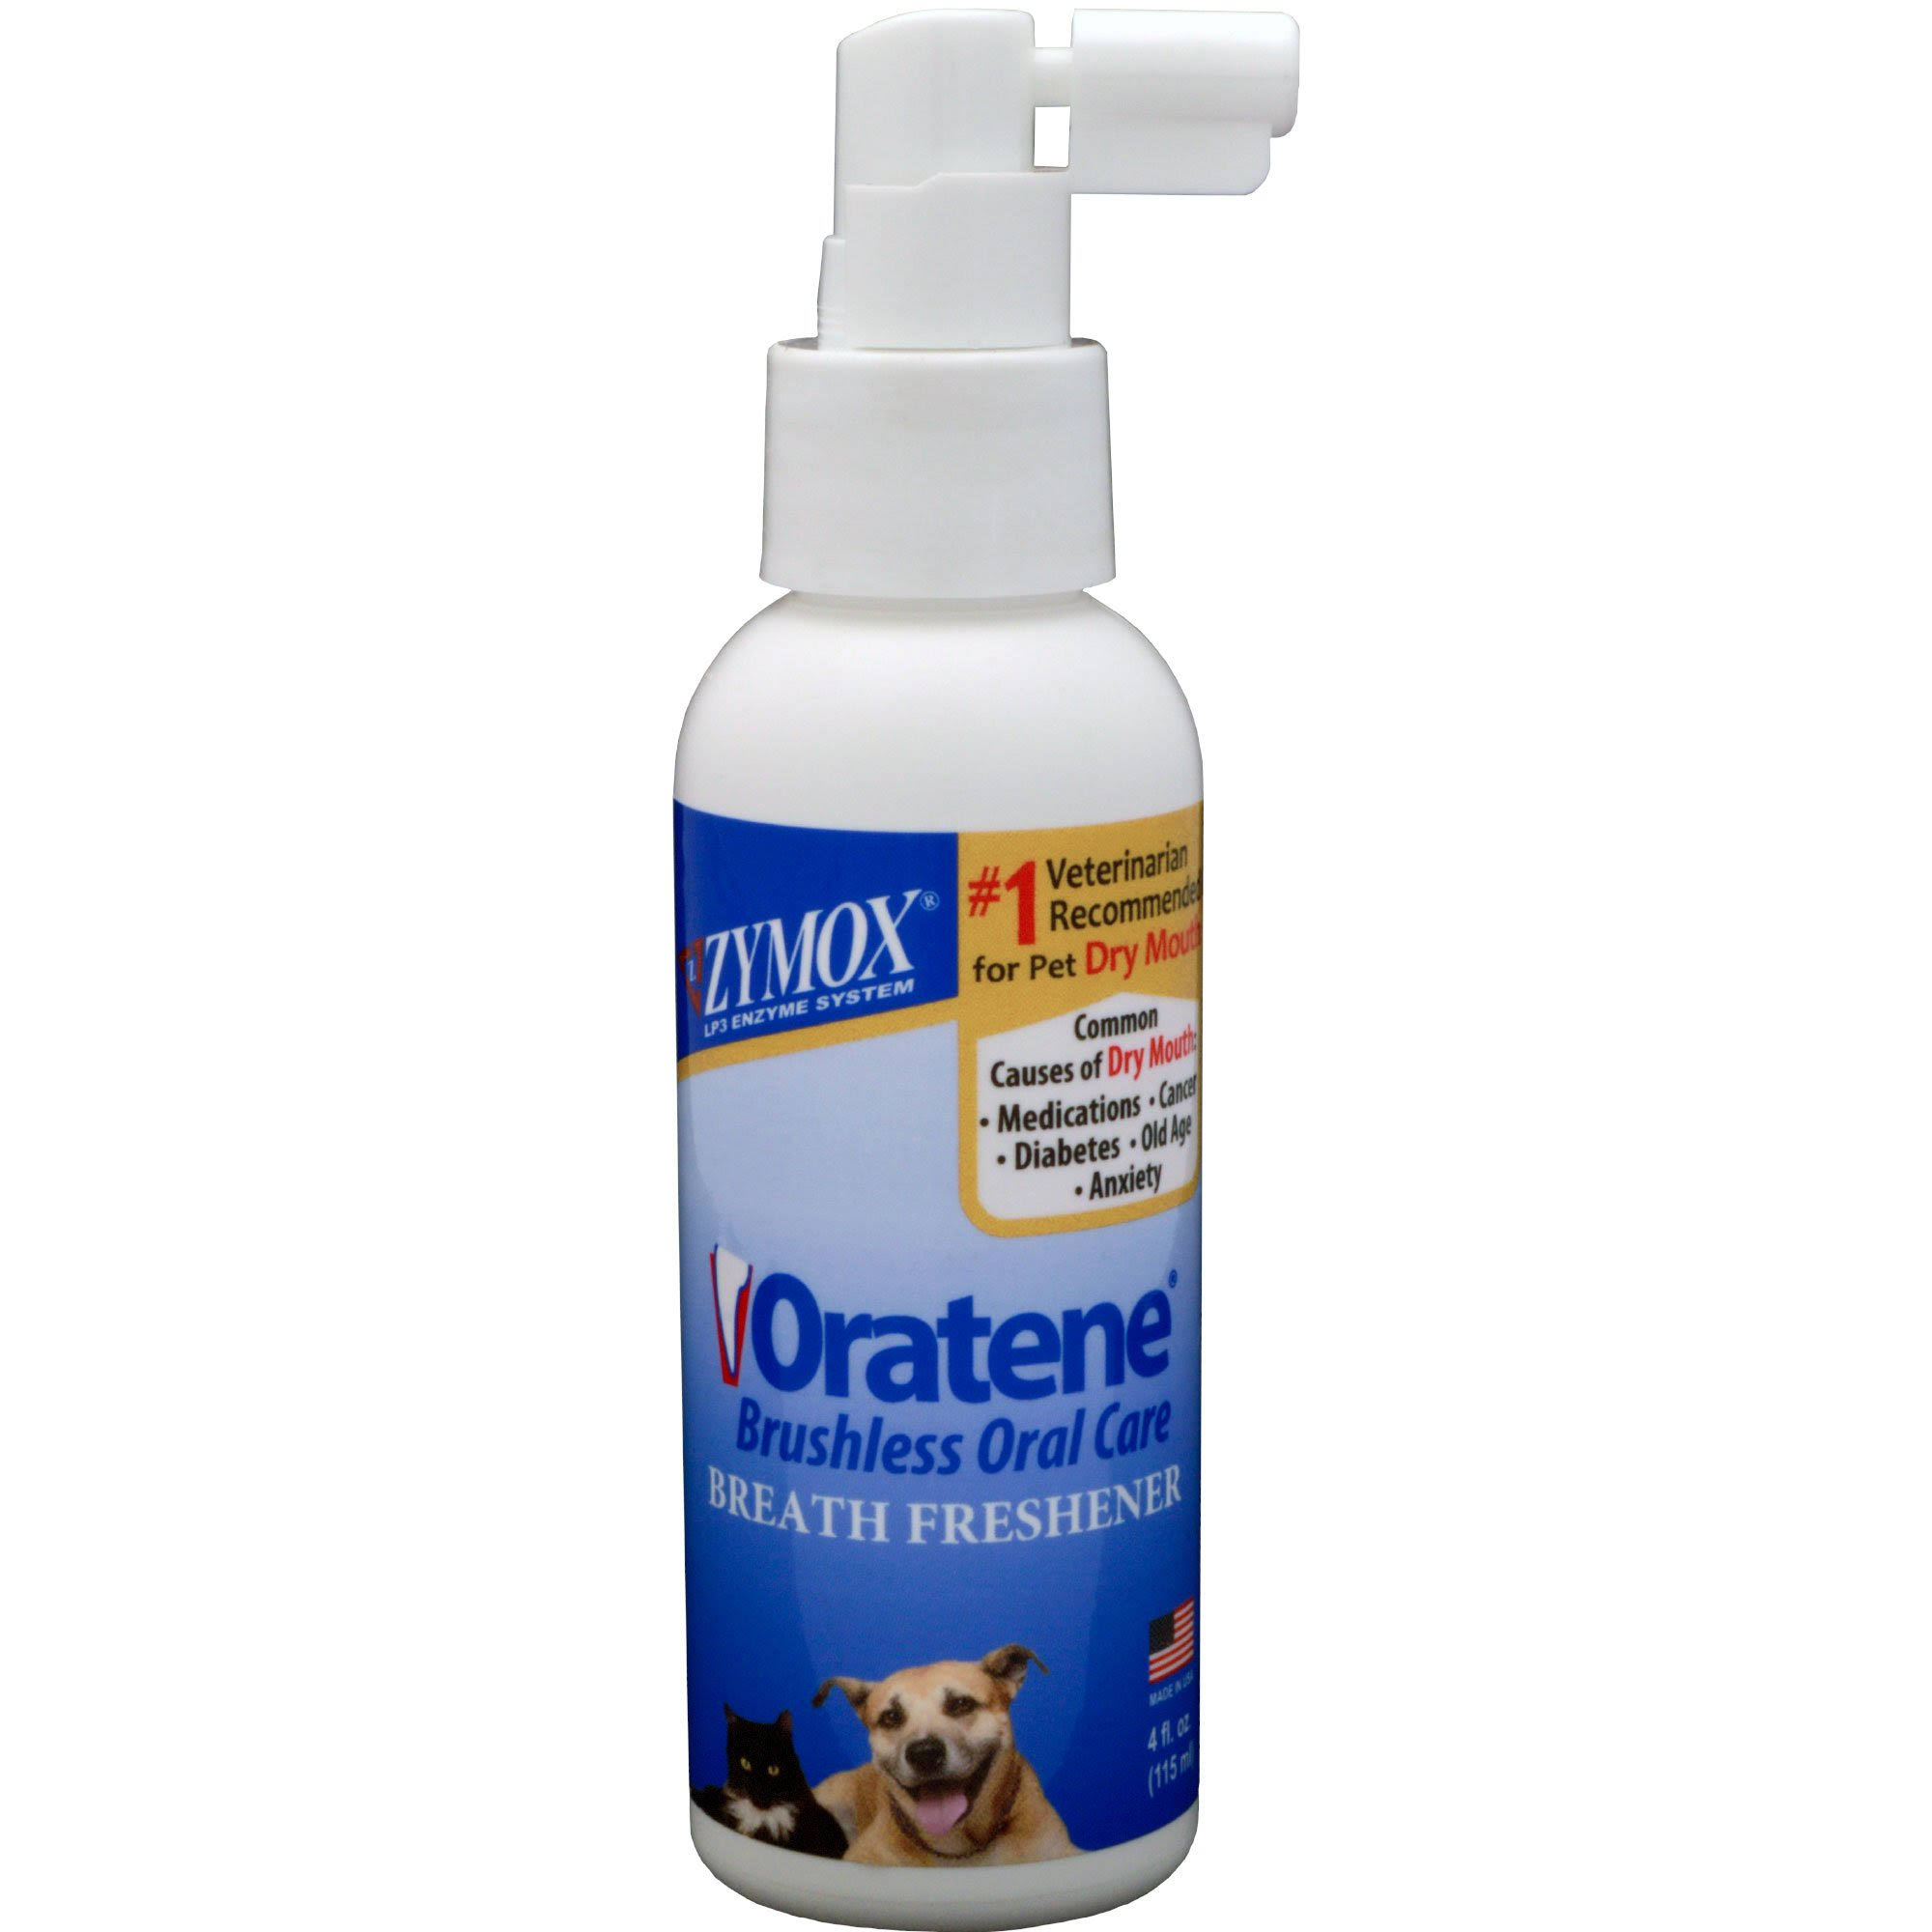 Oratene Dental Breath Freshener (4 oz)